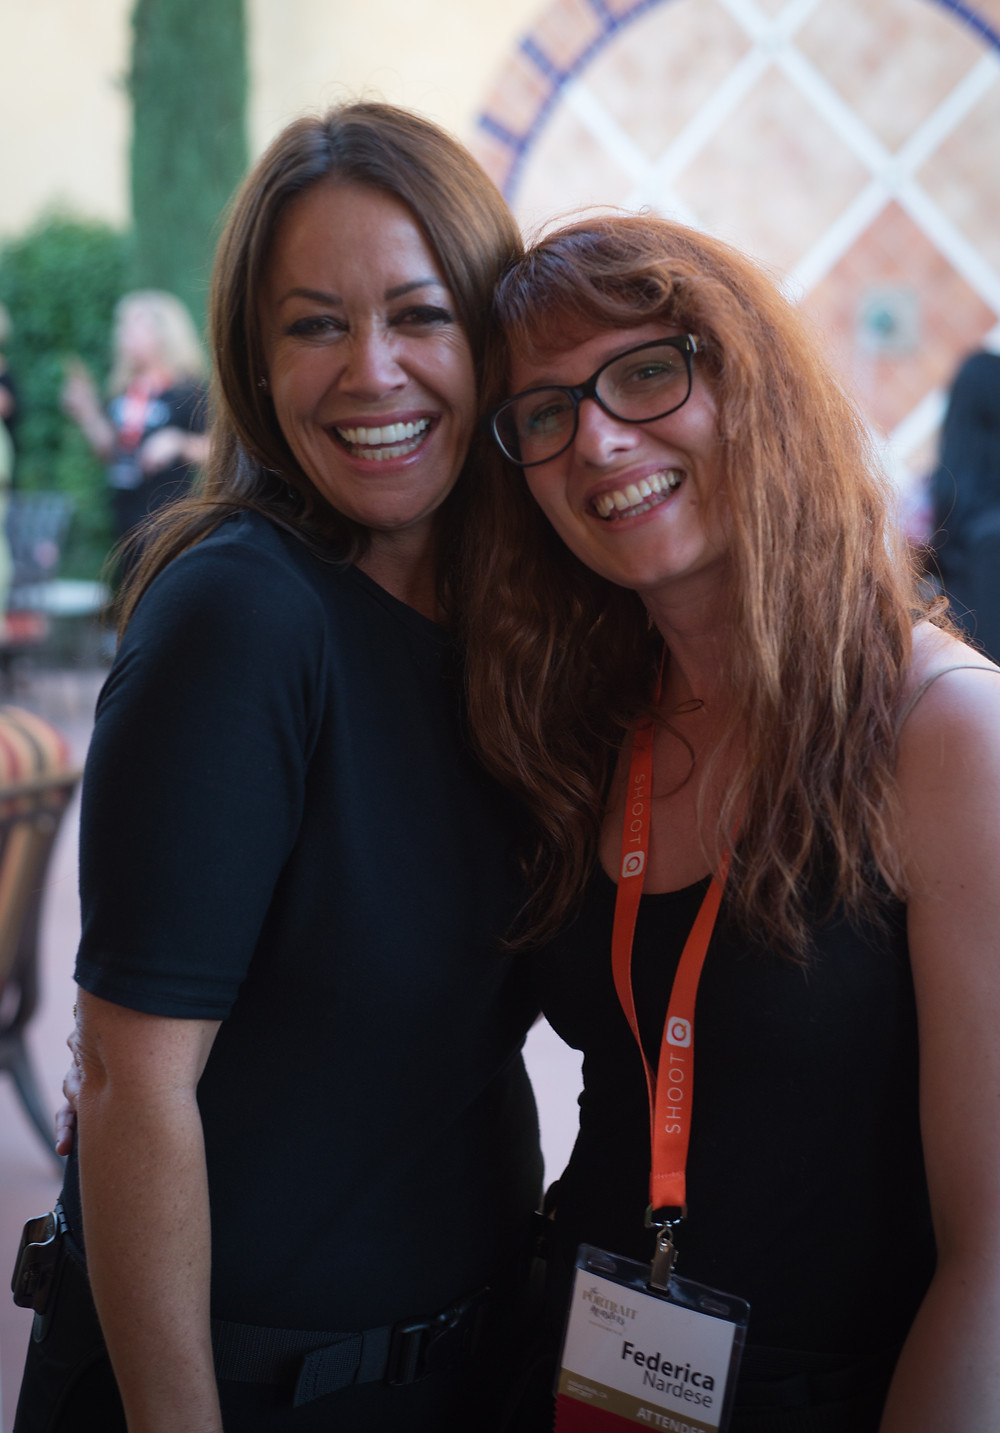 federica nardese and sue bryce at the portrait masters 2017